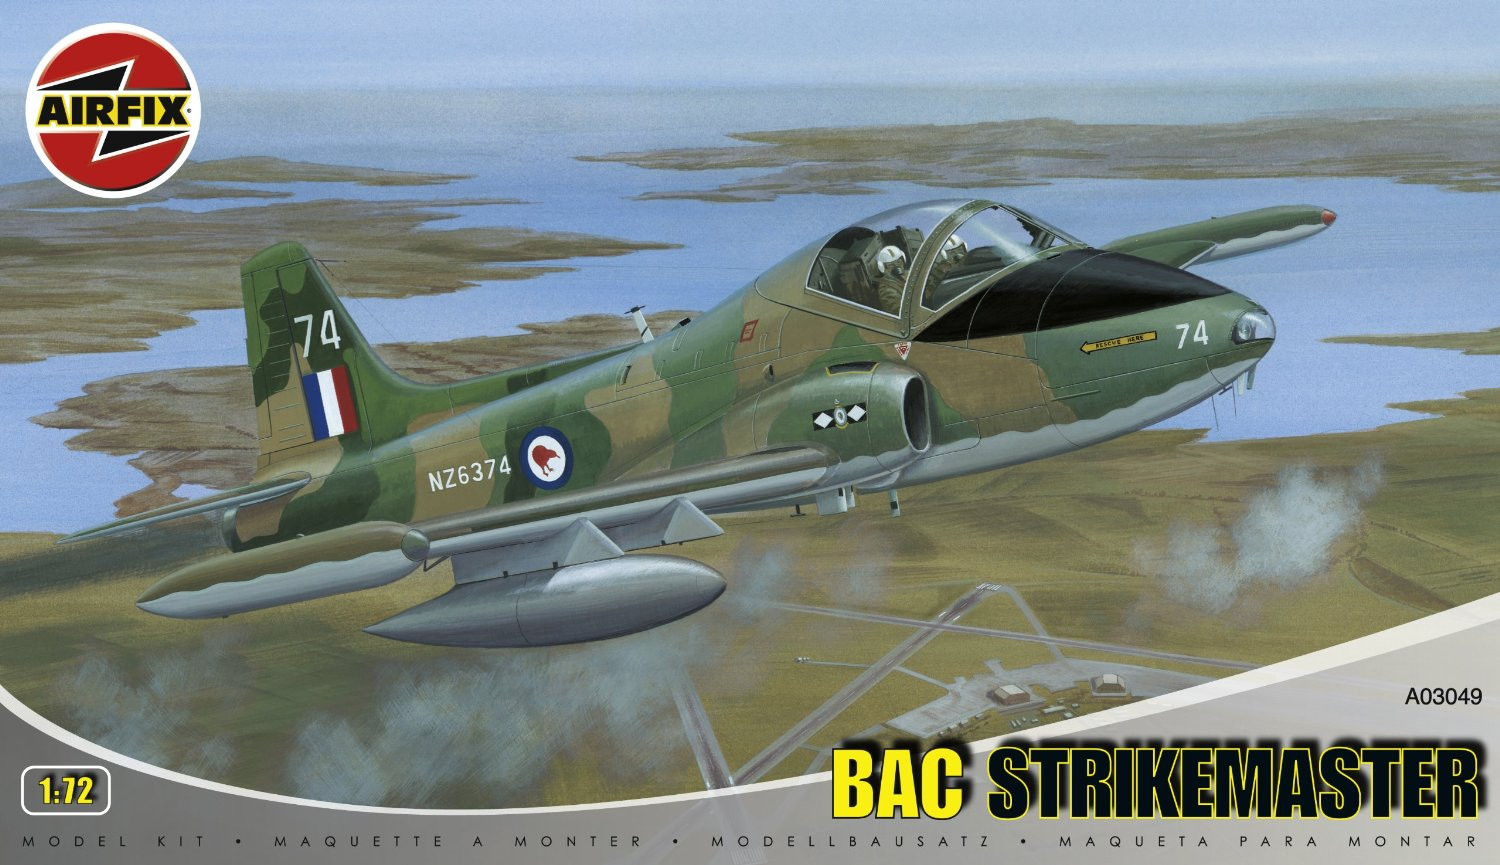 Airfix BAC Strikemaster 1/72